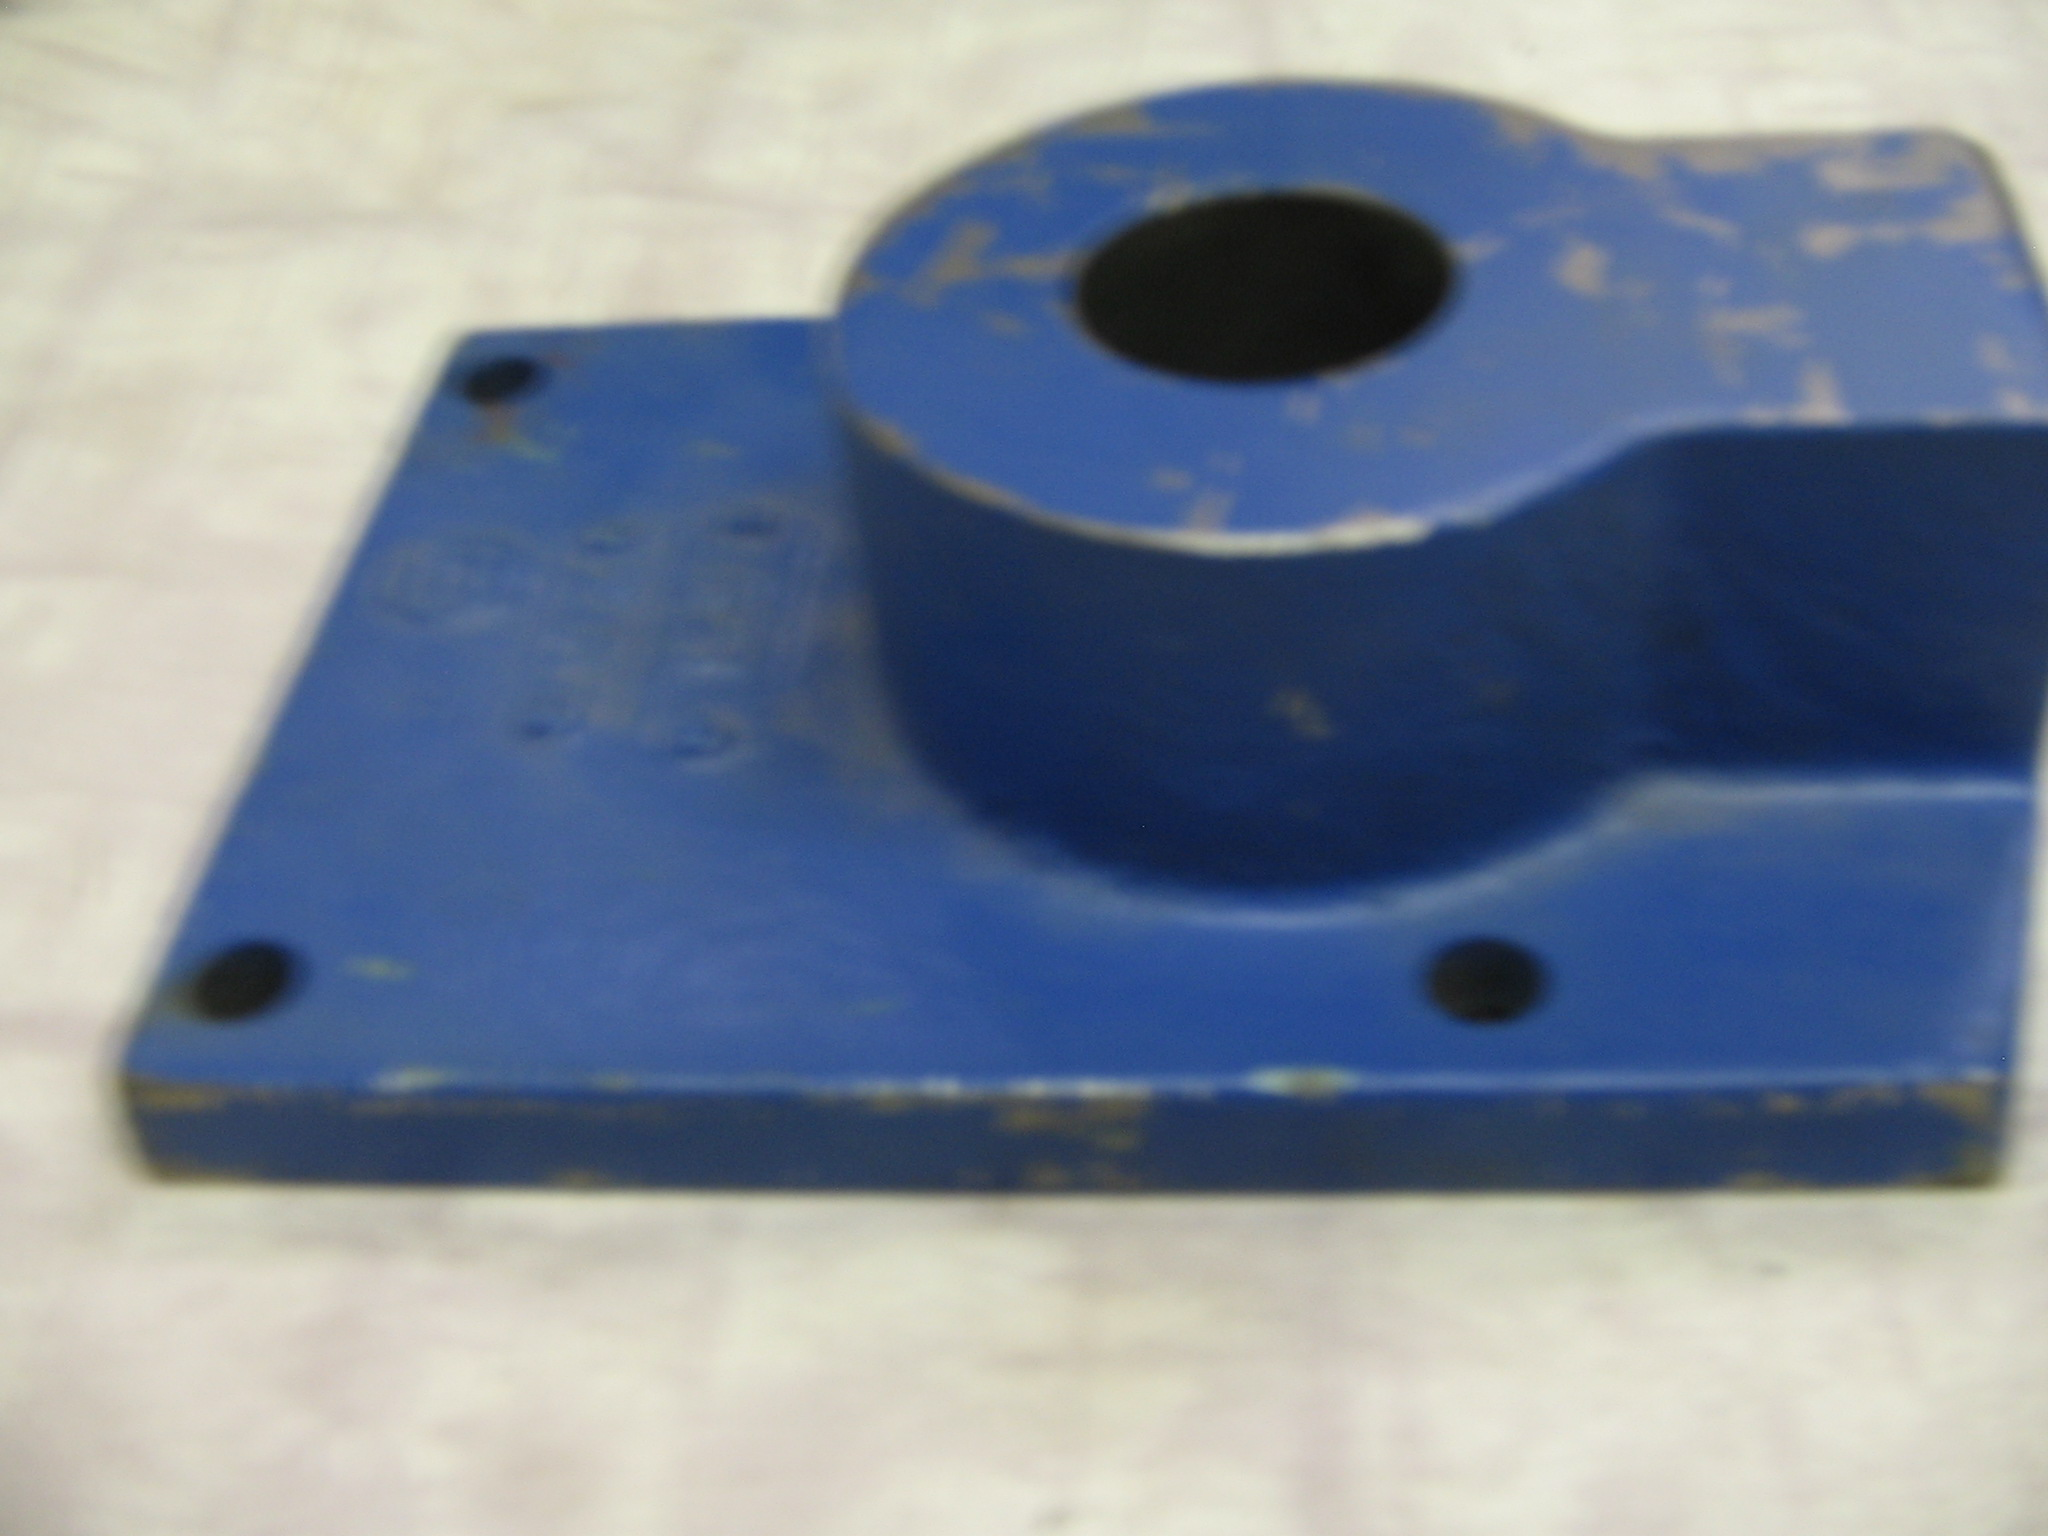 STM Outboard Support Plate